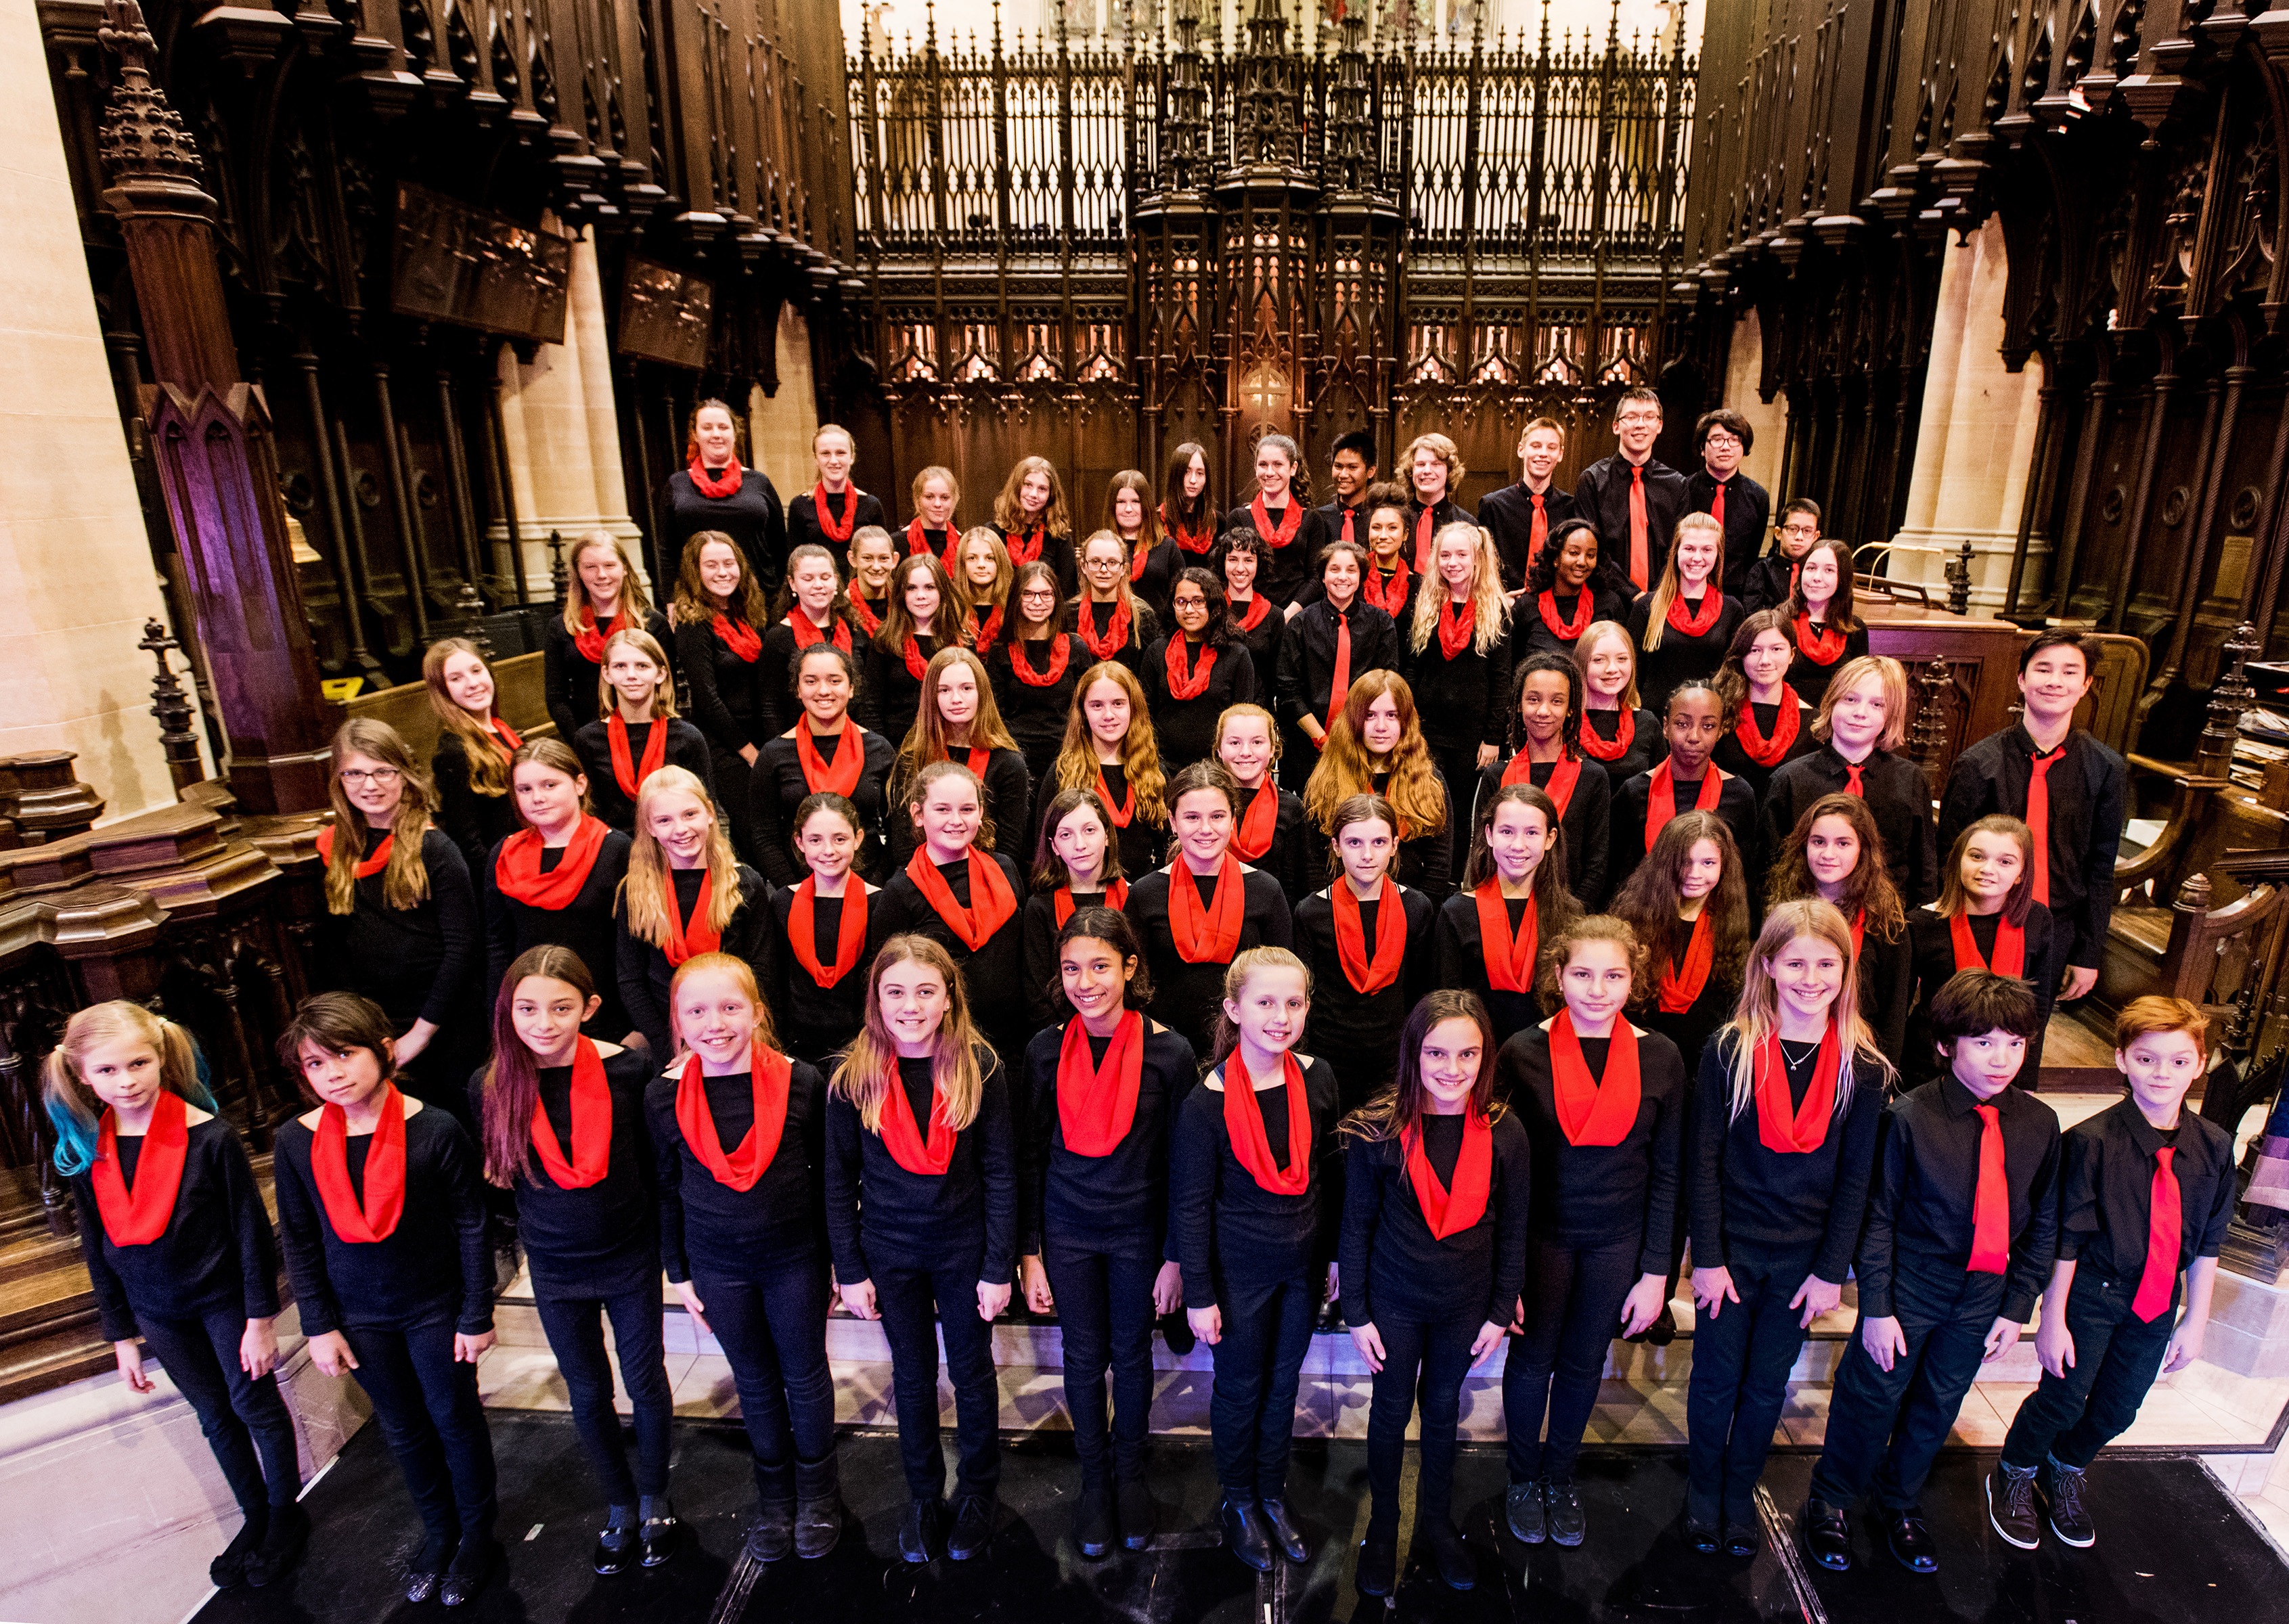 Toronto Beaches Children's and Youth Chorus